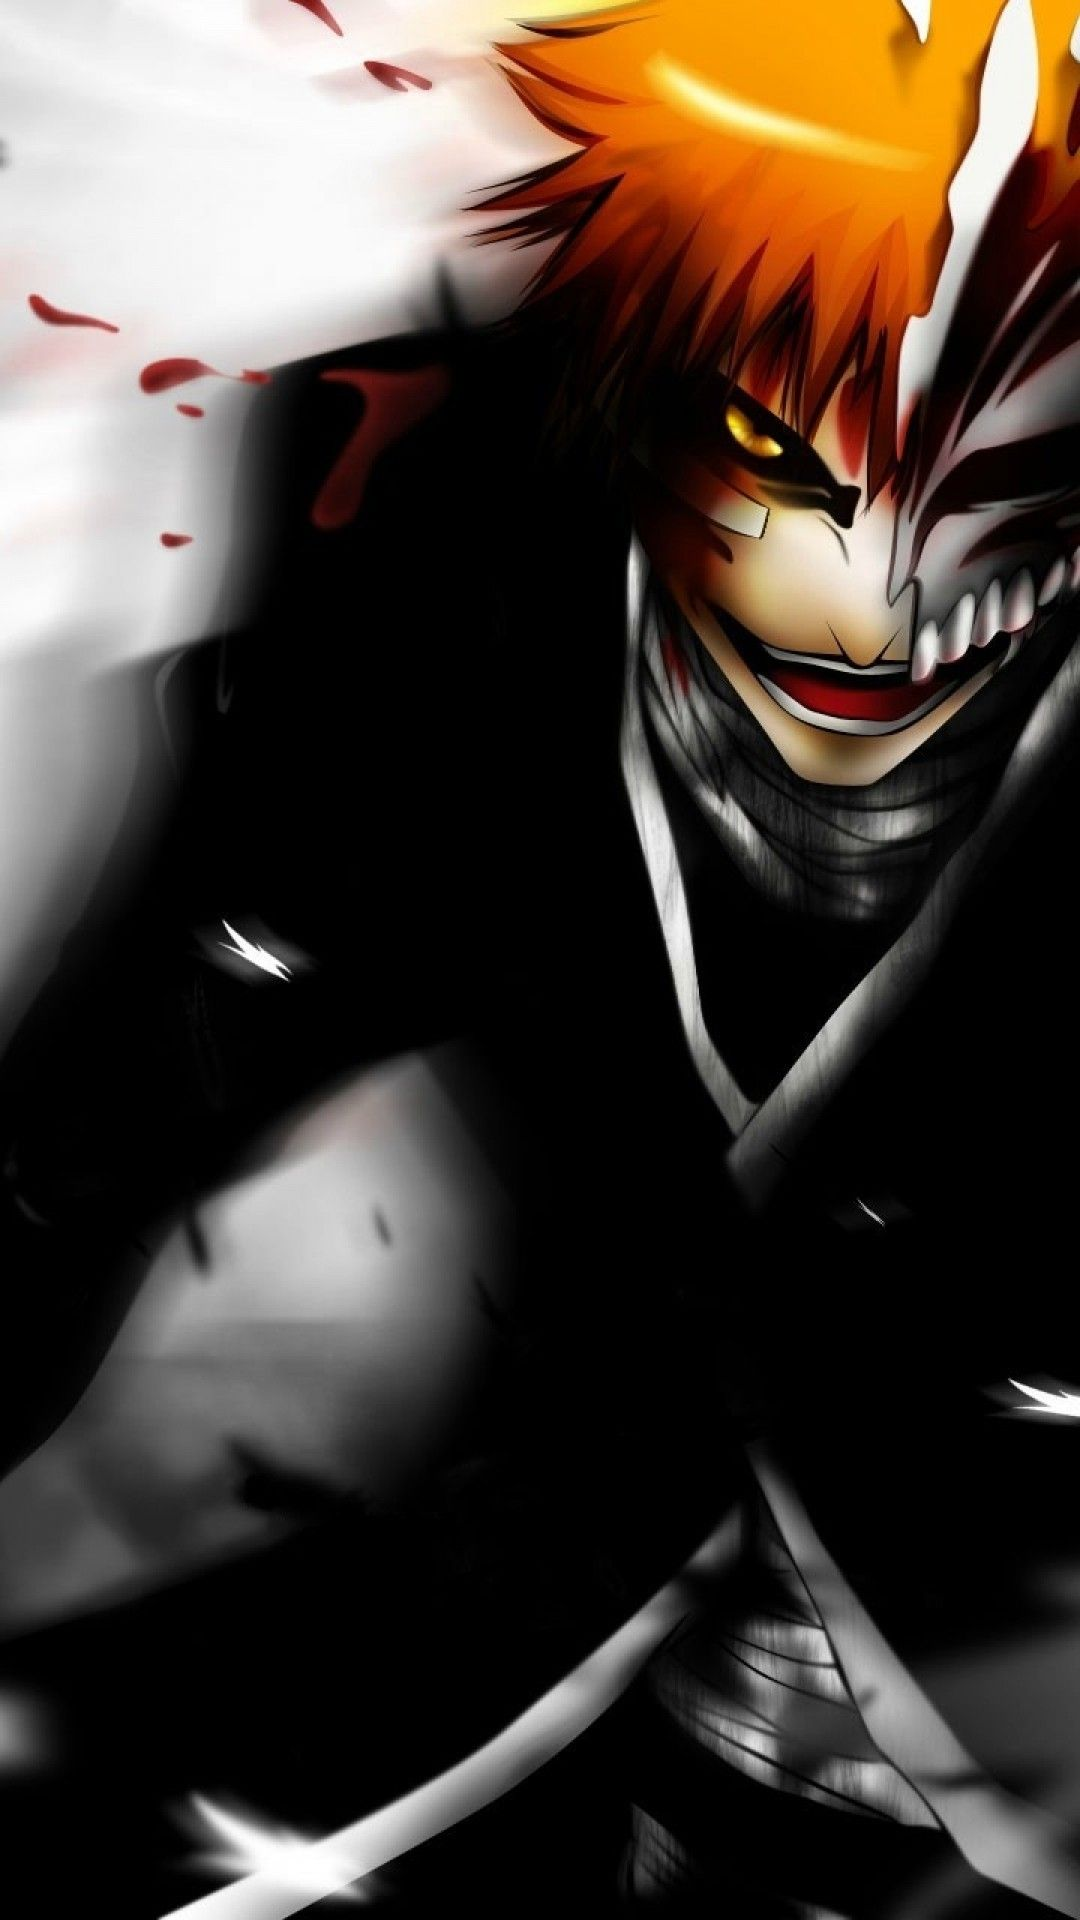 Bleach Wallpaper Hd in 2020 (With images) | Anime ...